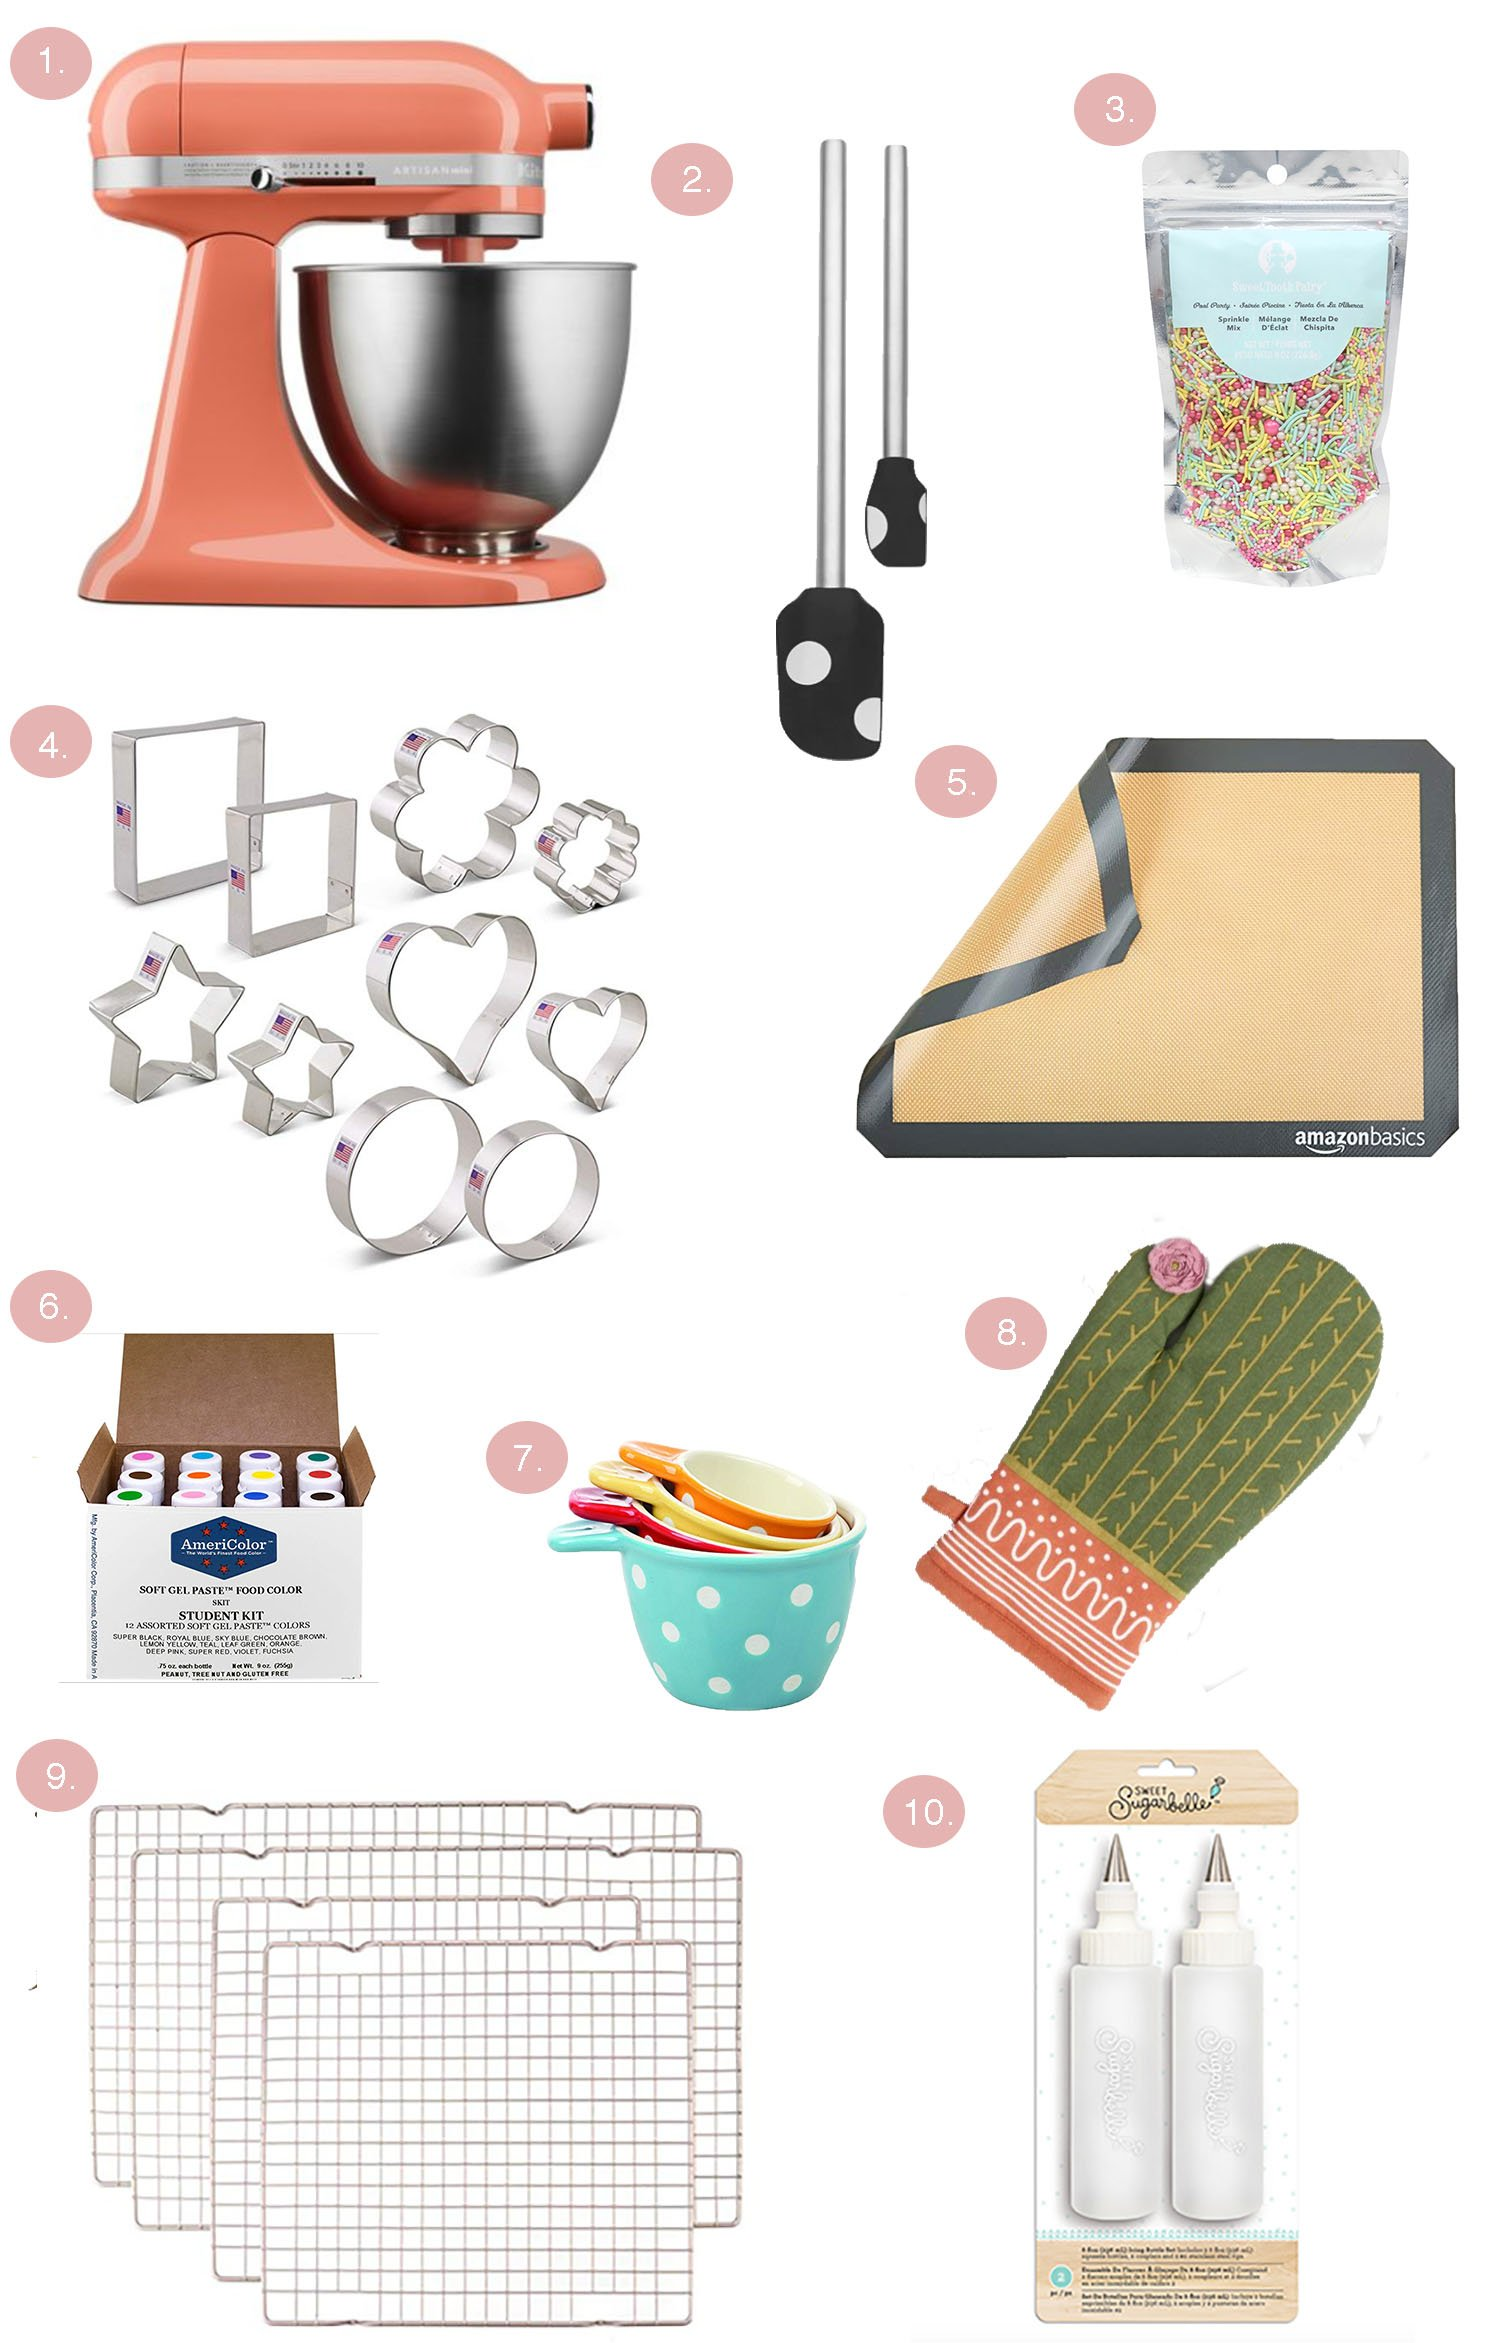 What You Need to Decorate Sugar Cookies